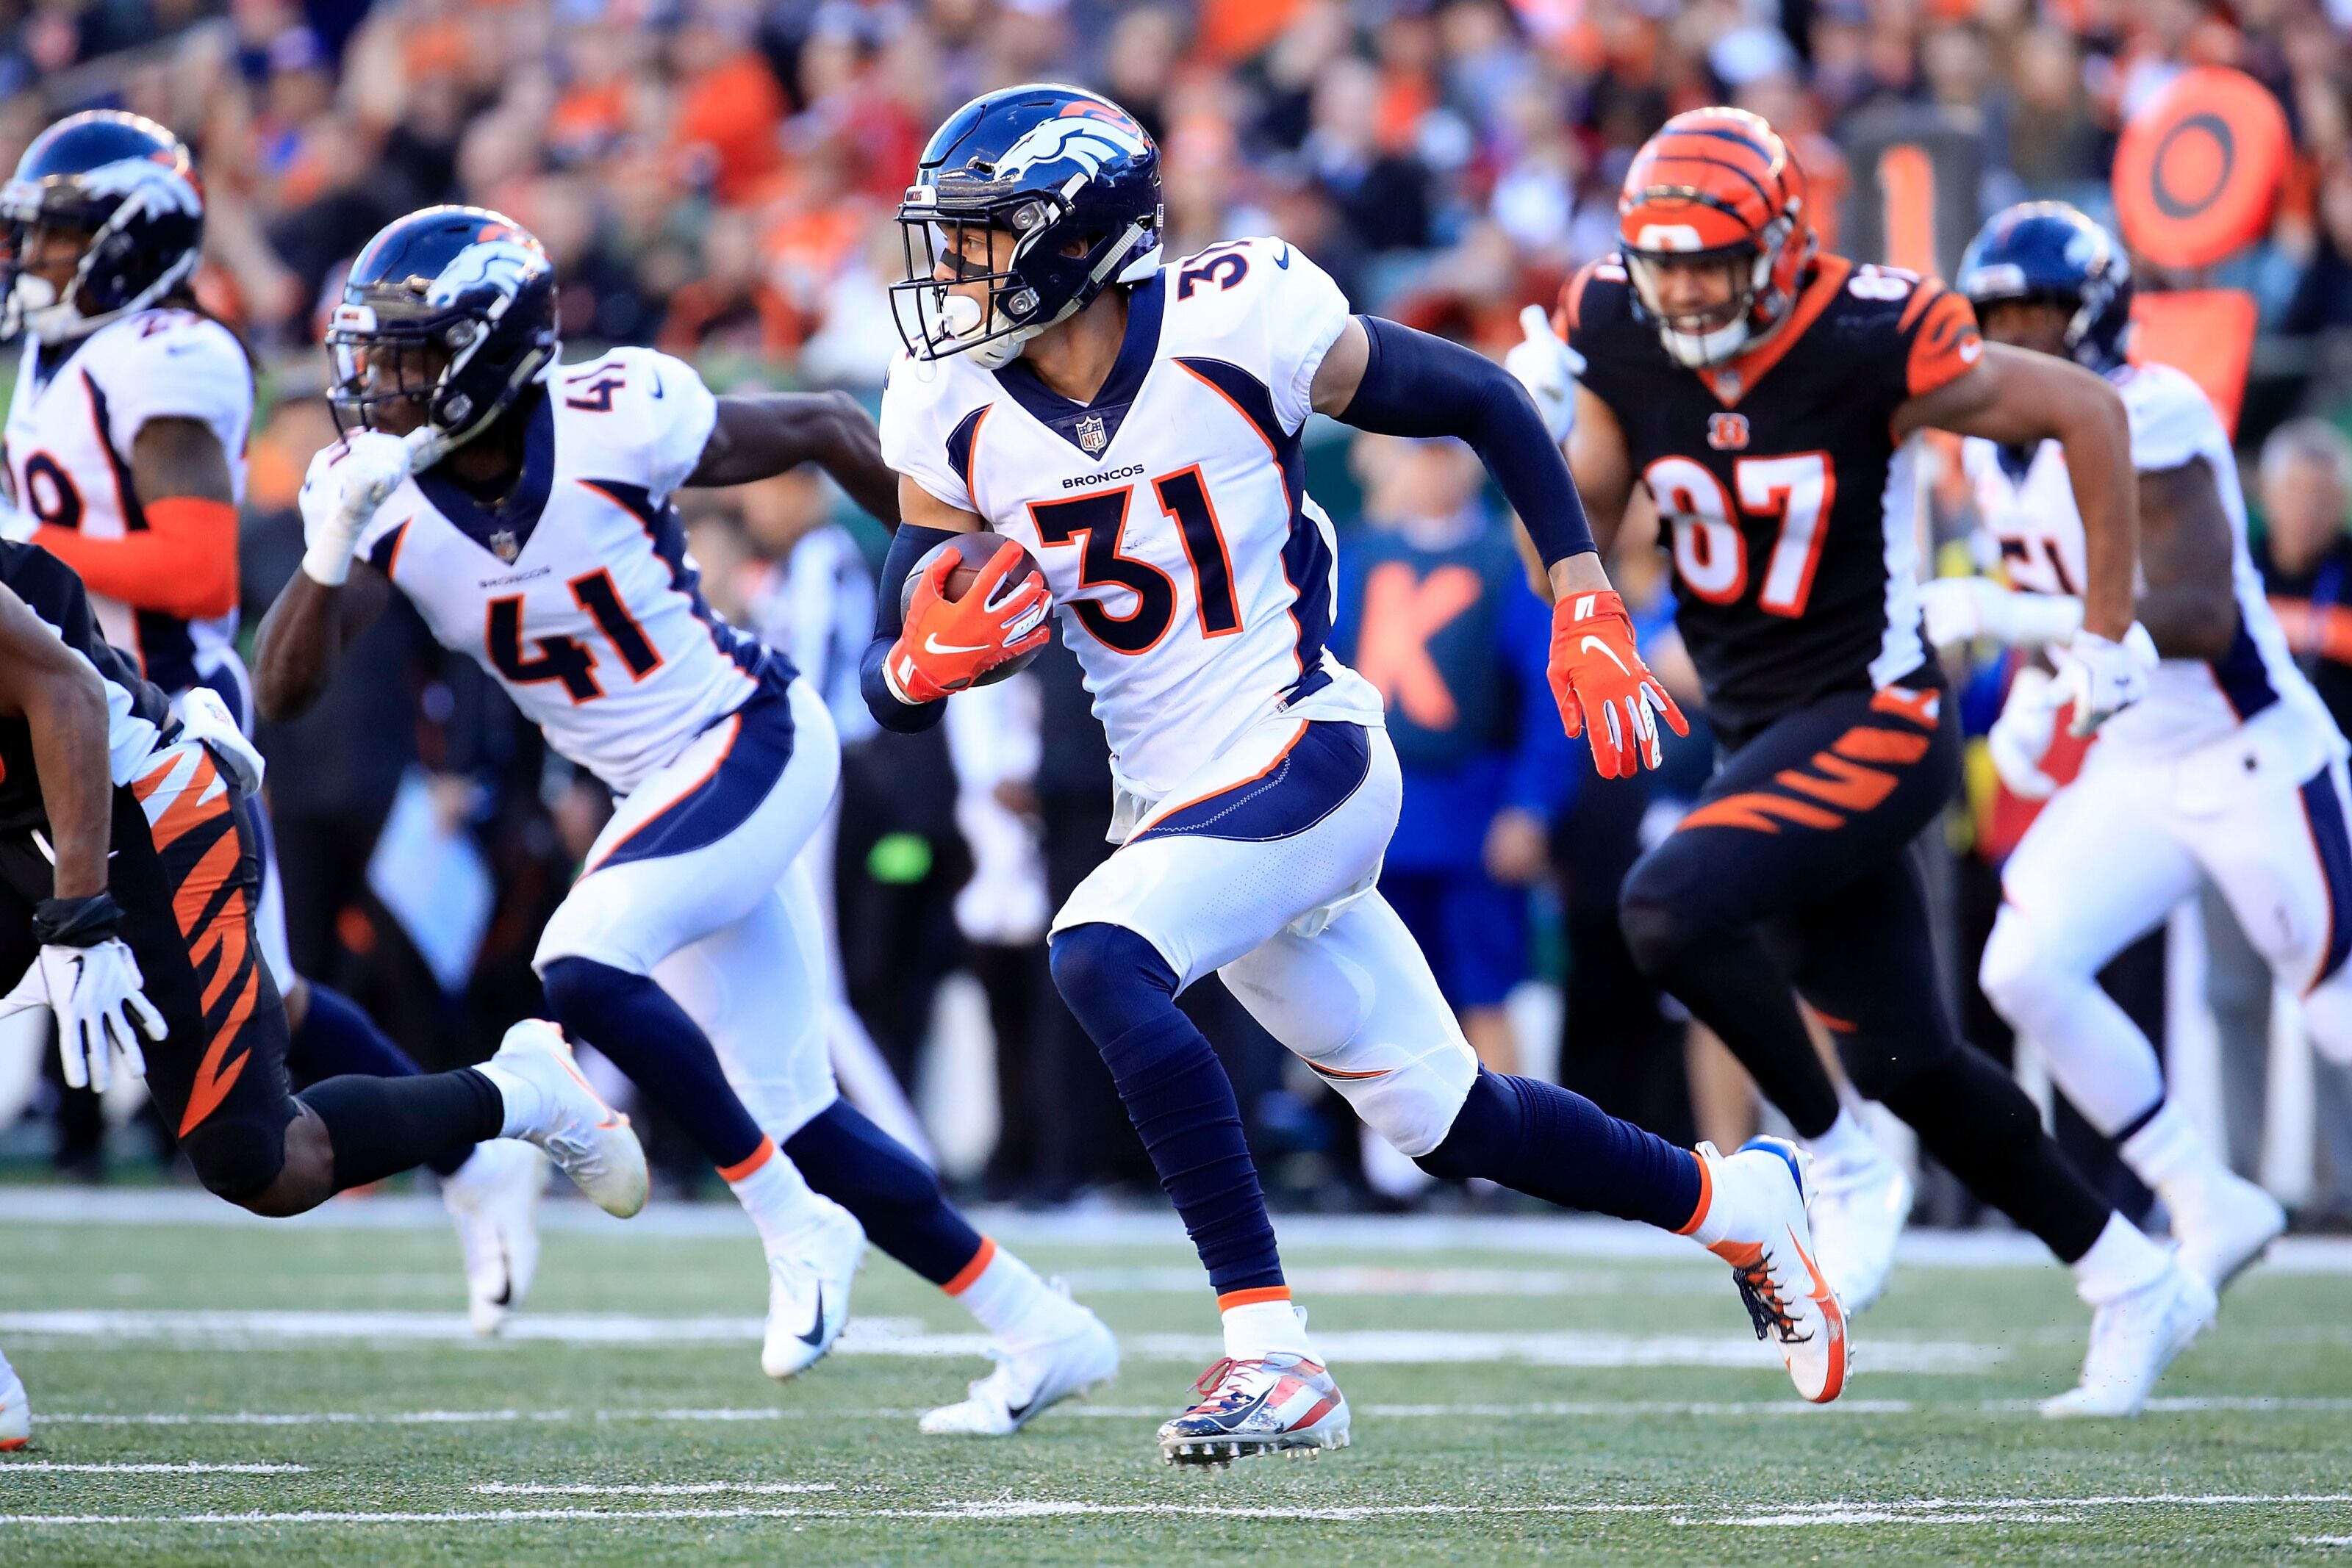 Denver Broncos: Safety position shouldn't be a need